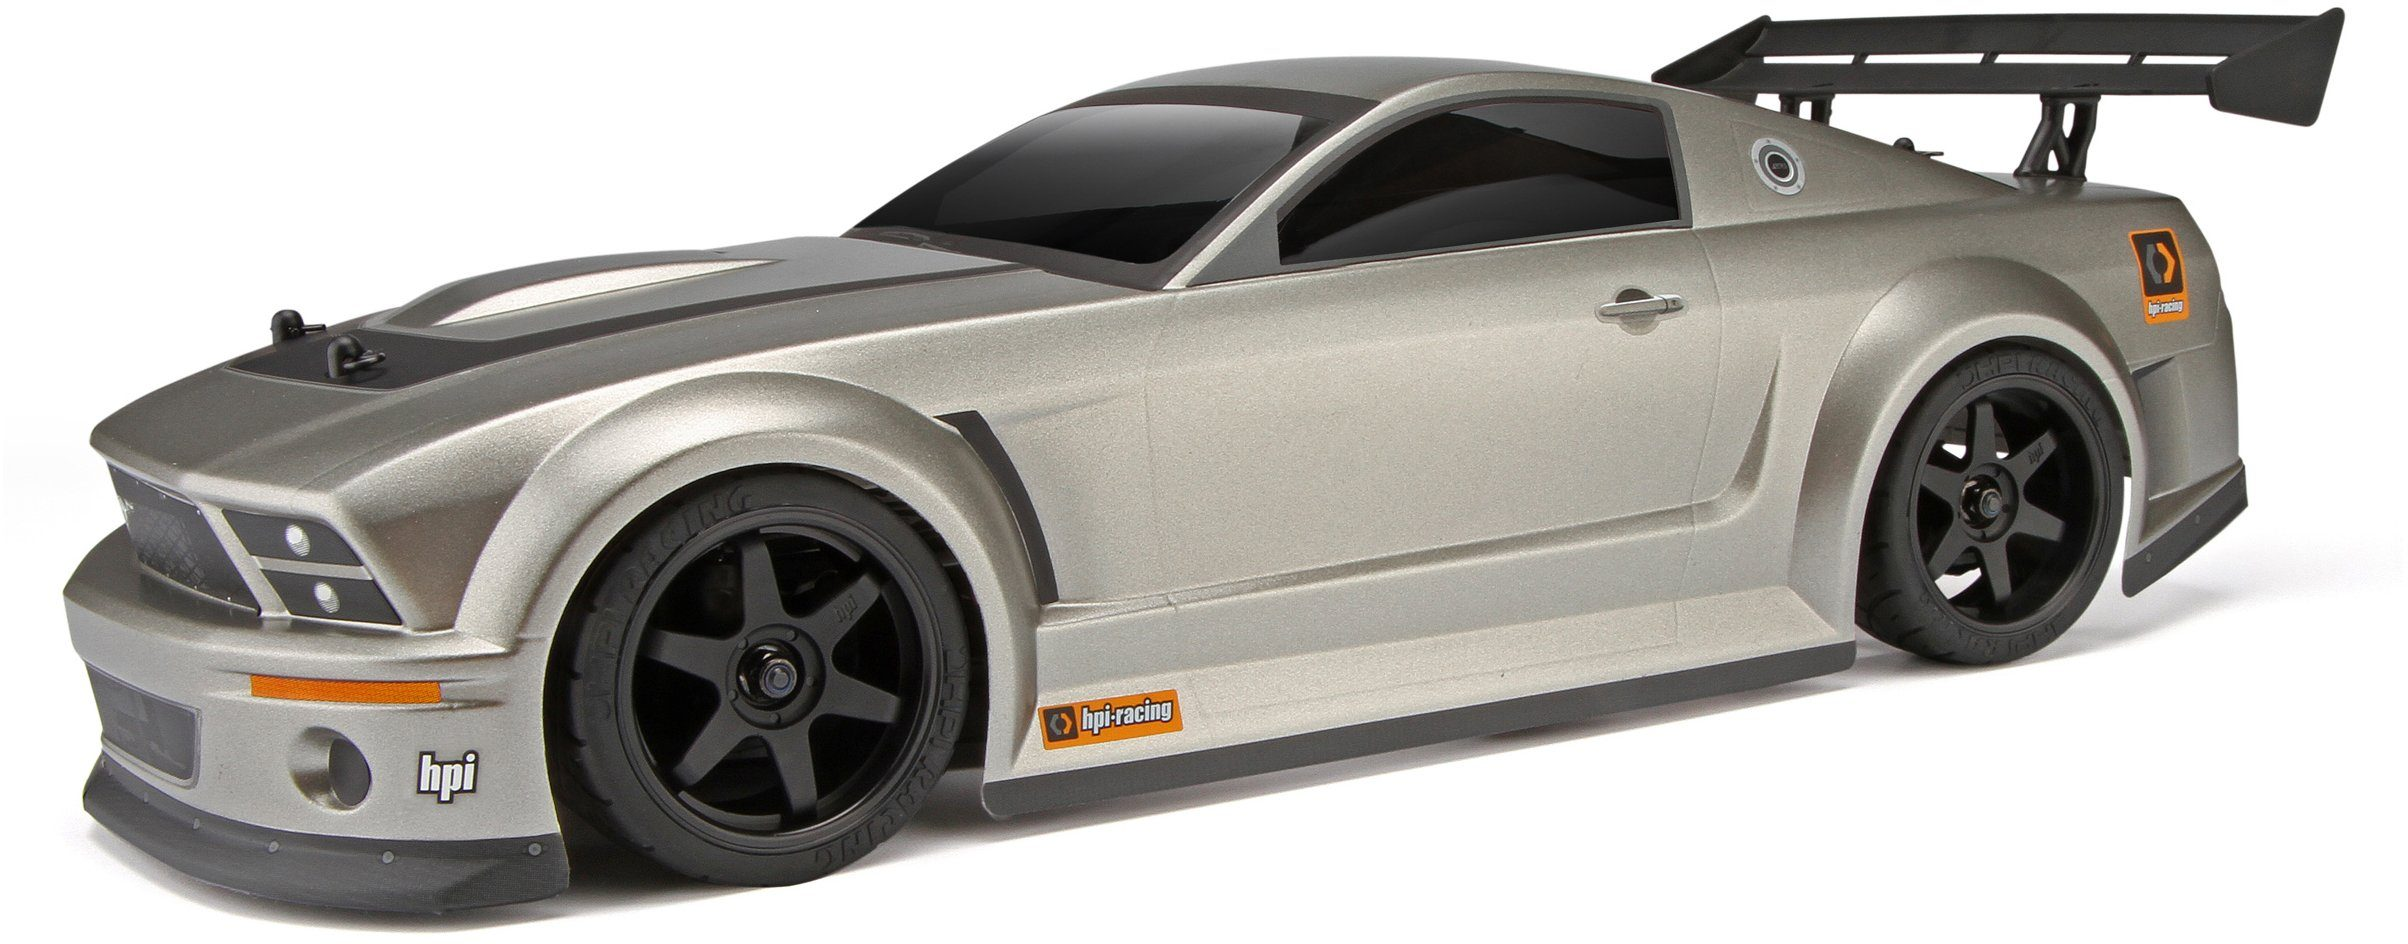 HPI Racing RC Auto, »Sprint Flux RTR Mustang GT-R«